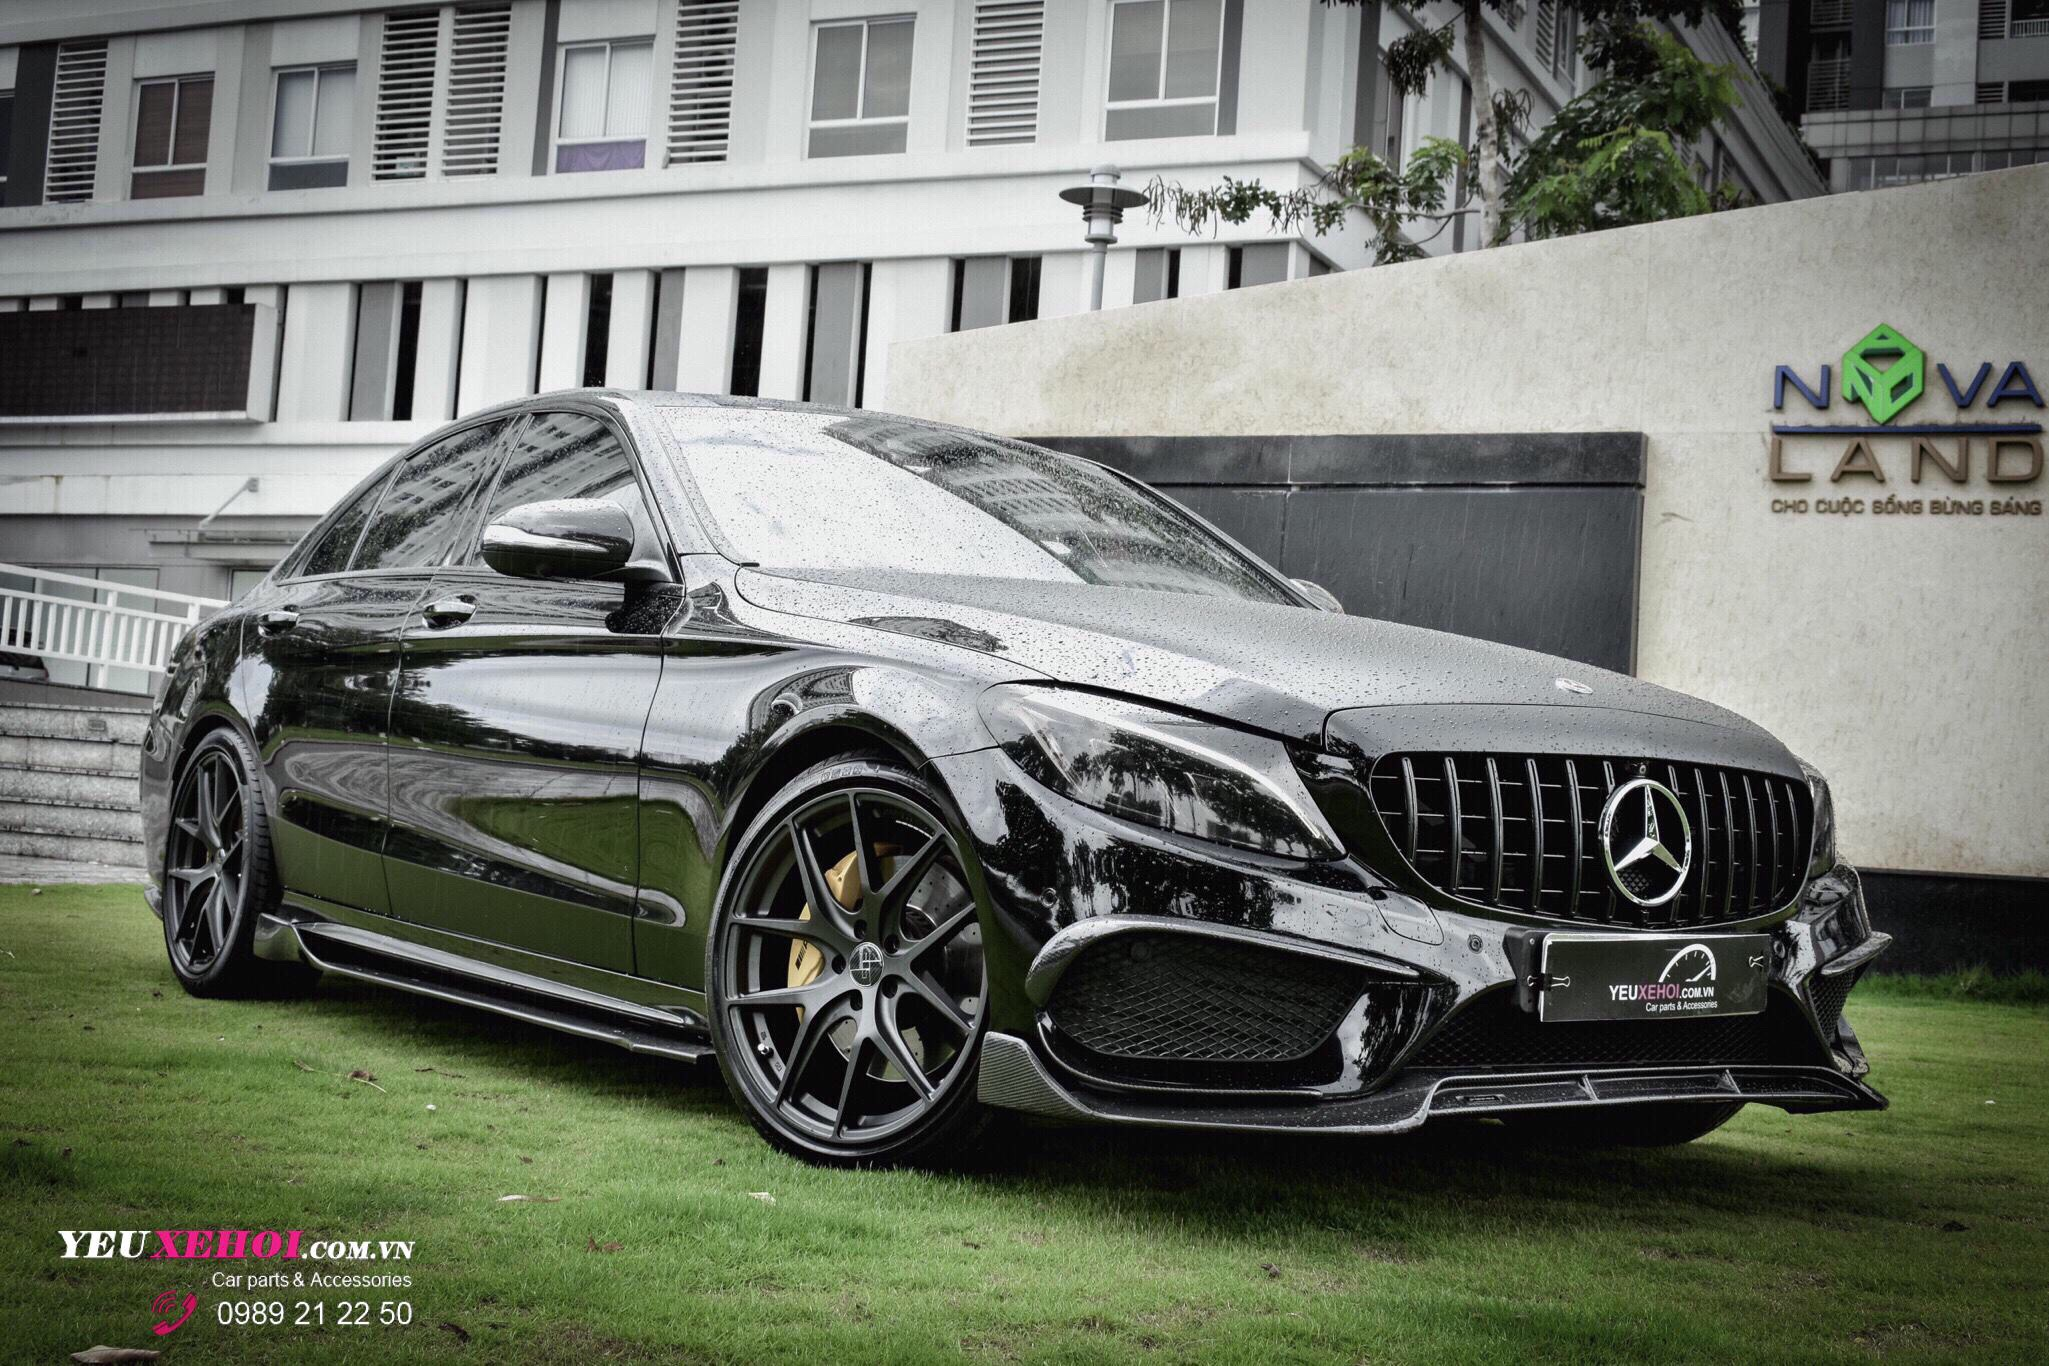 MERCEDES C300 W205 19 INCHES 305FORGED